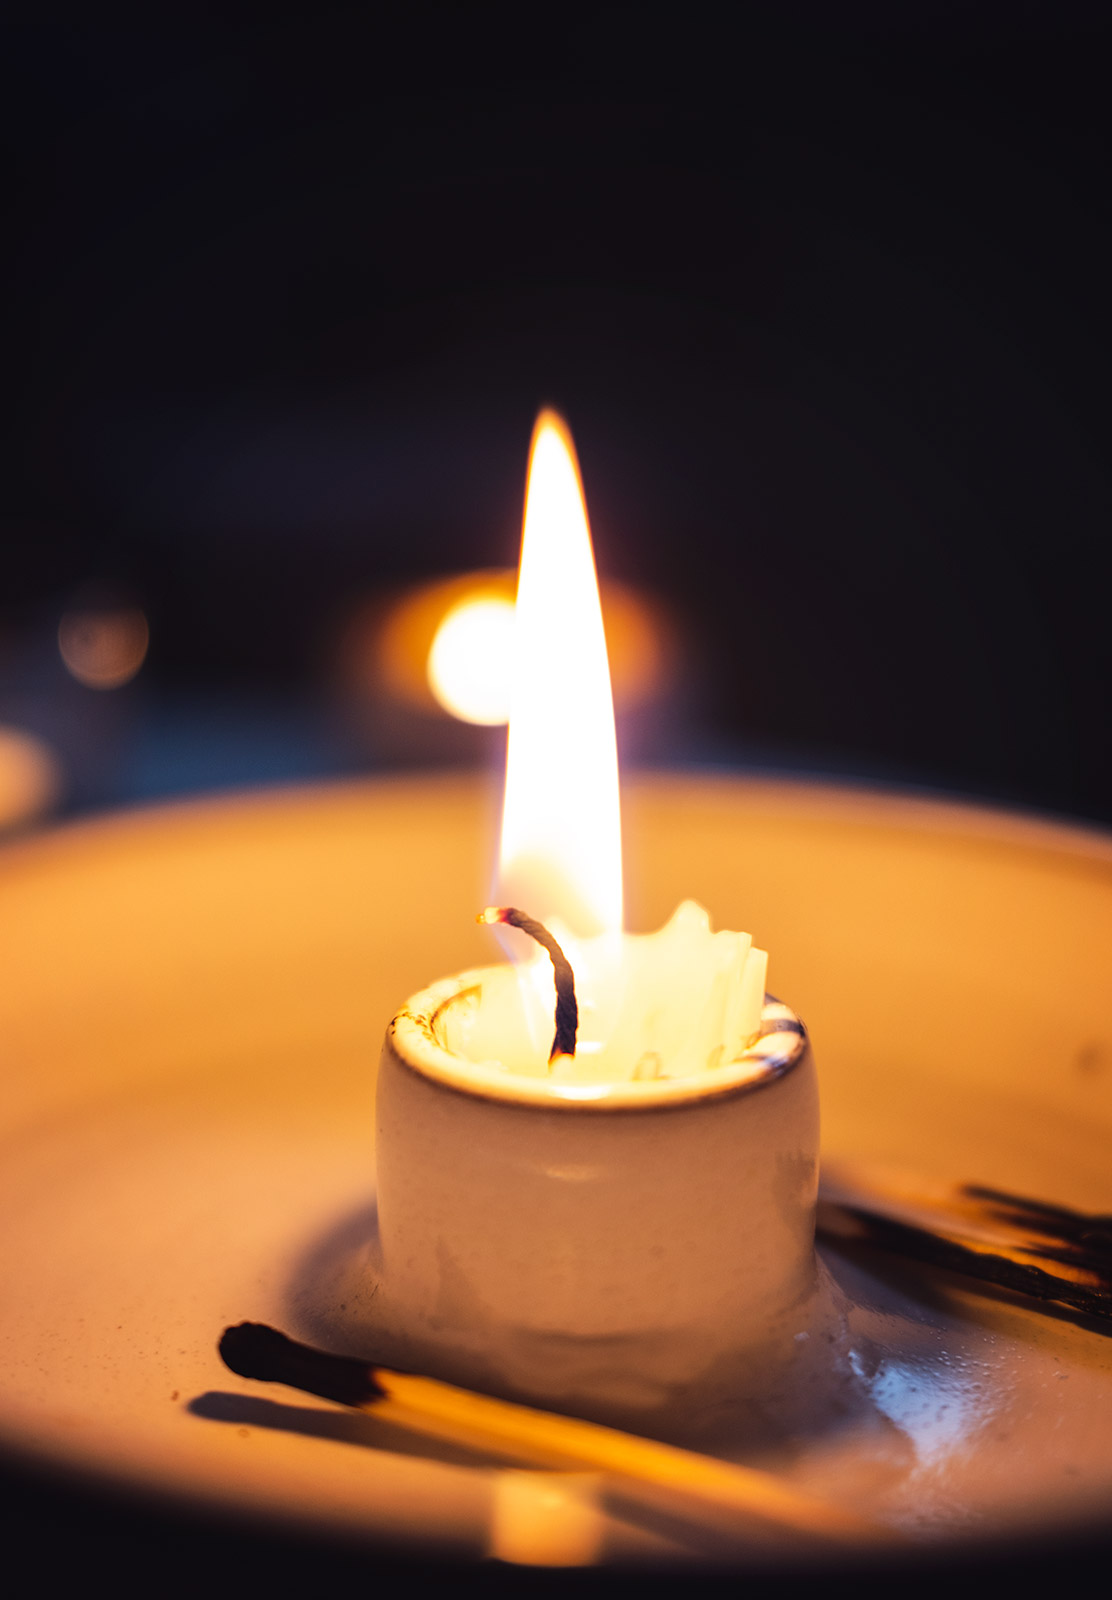 Orange glow from candle